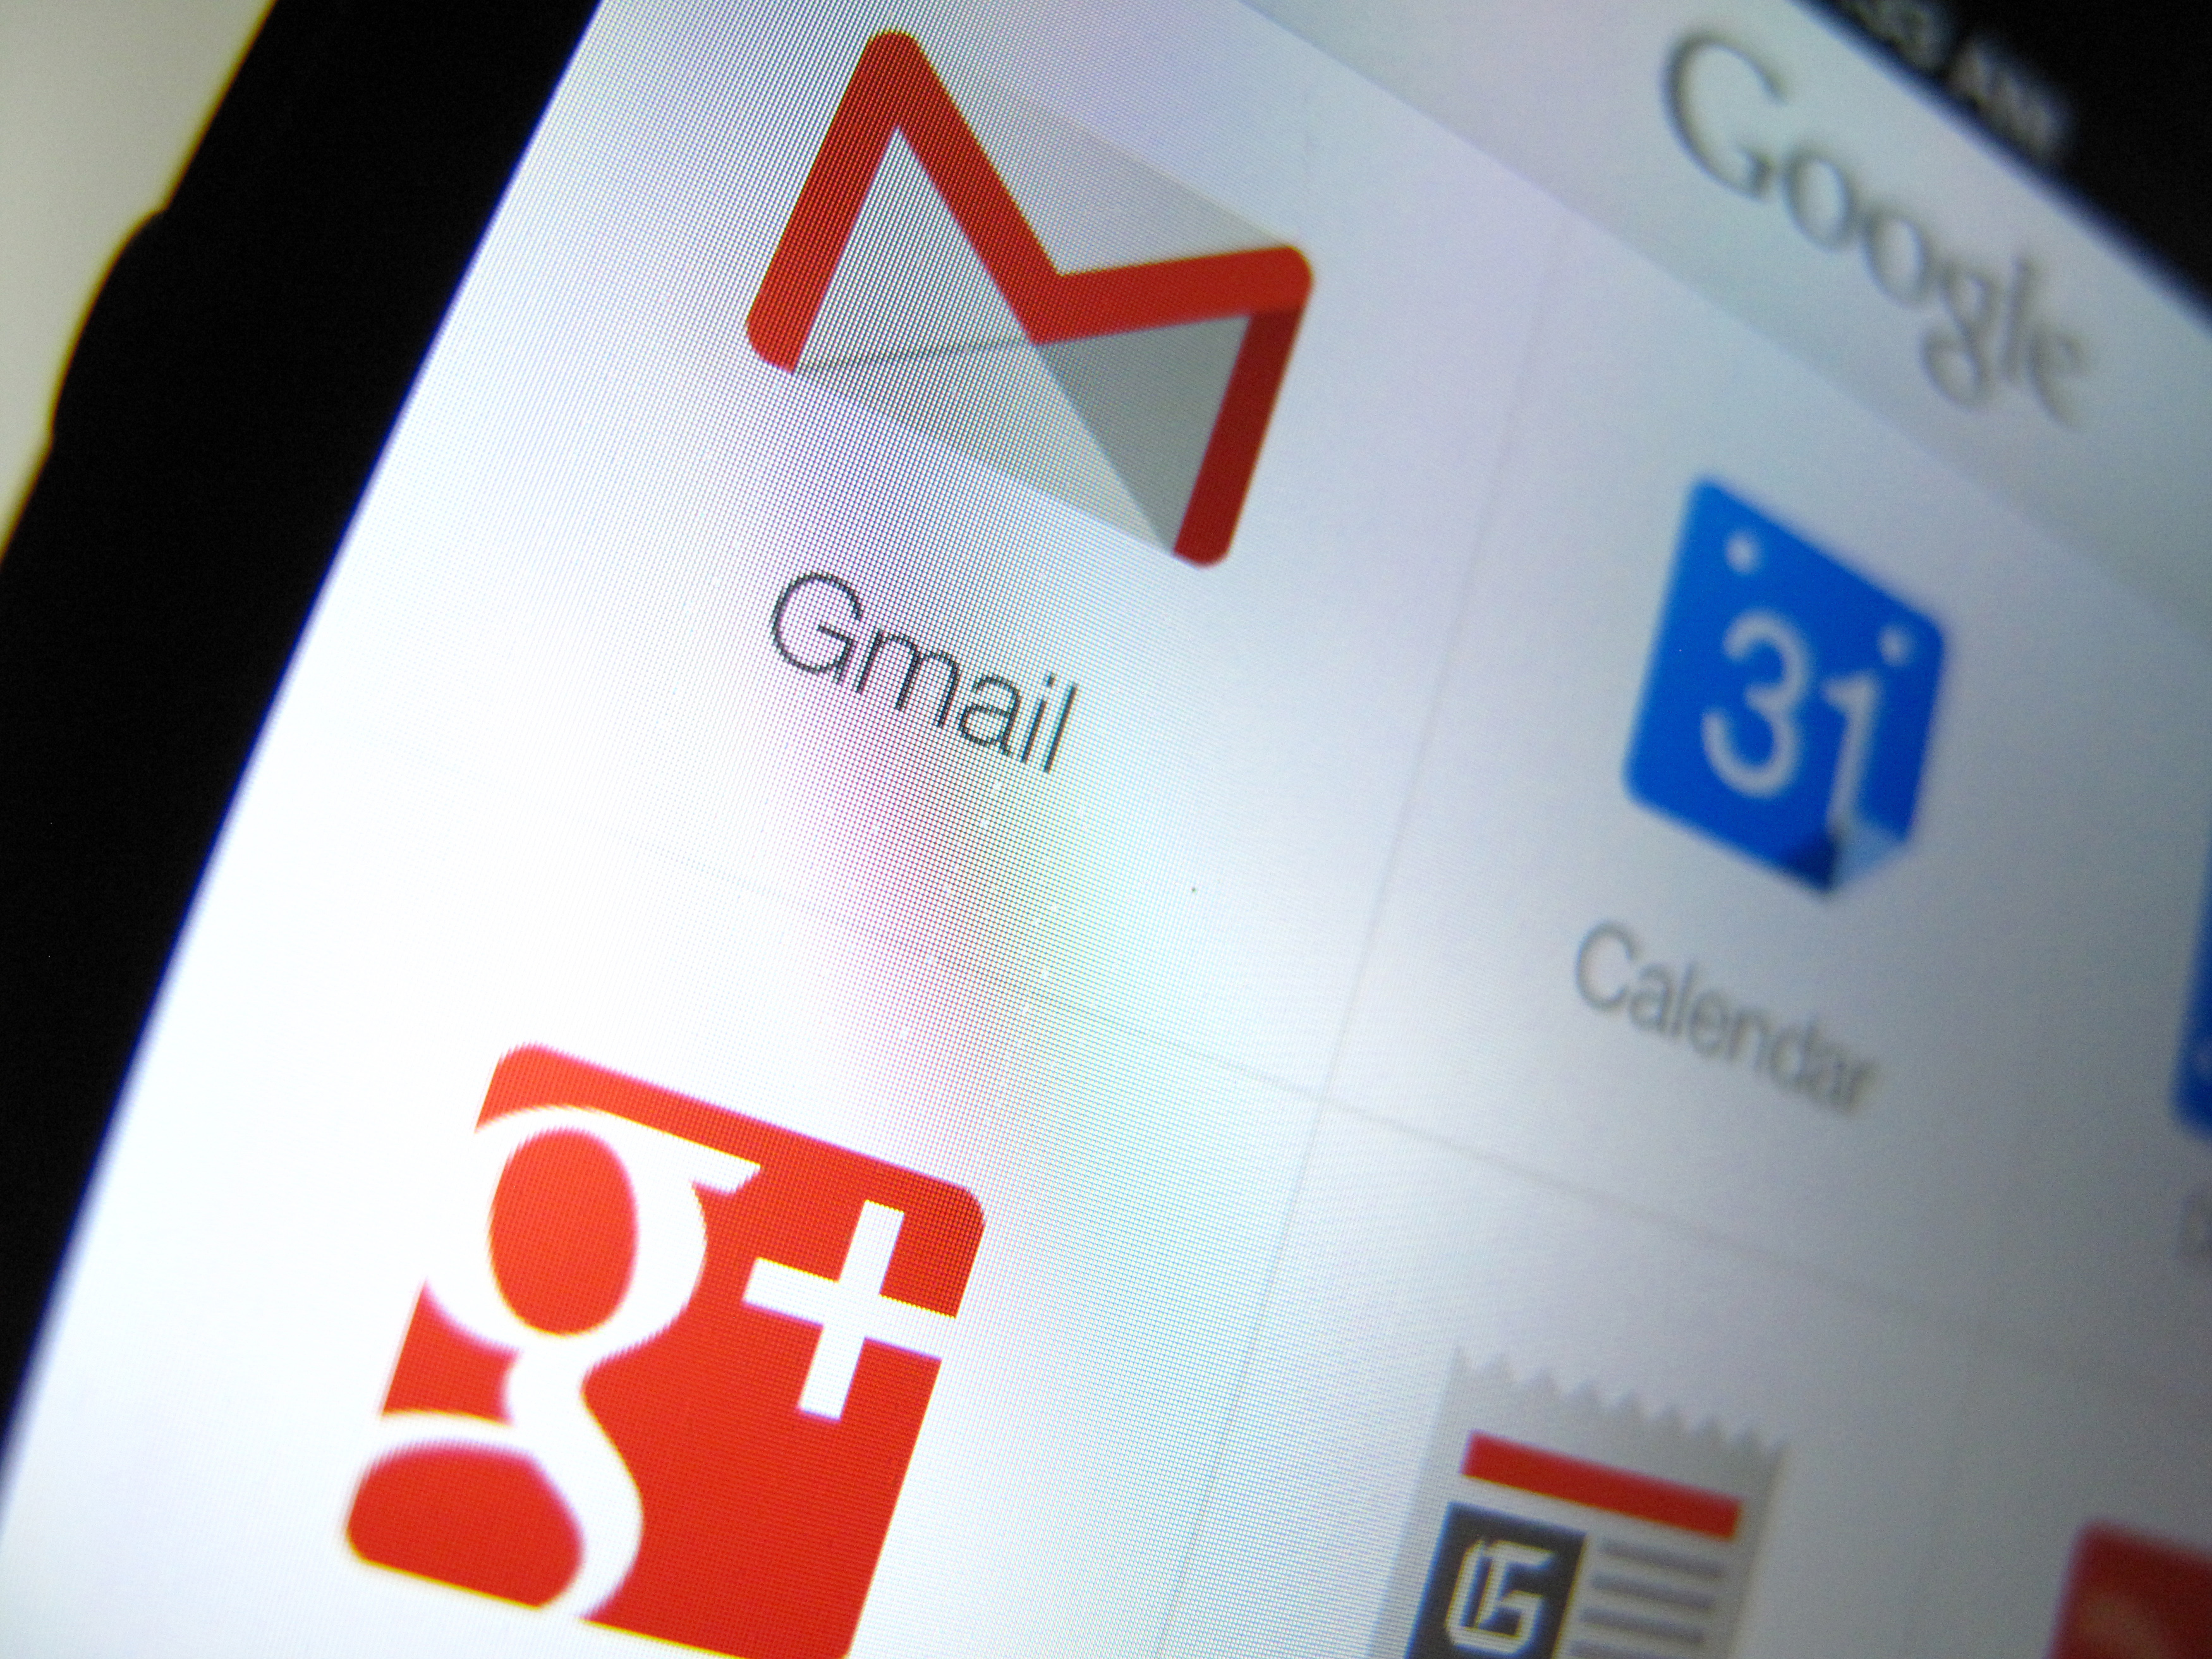 Google apps are shown on an Apple iphone 5 in this photo illustration in Encinitas, California, April 16, 2013. Google will report their earnings on April 18.            REUTERS/Mike Blake  (UNITED STATES - Tags: BUSINESS MEDIA) - RTXYNYQ